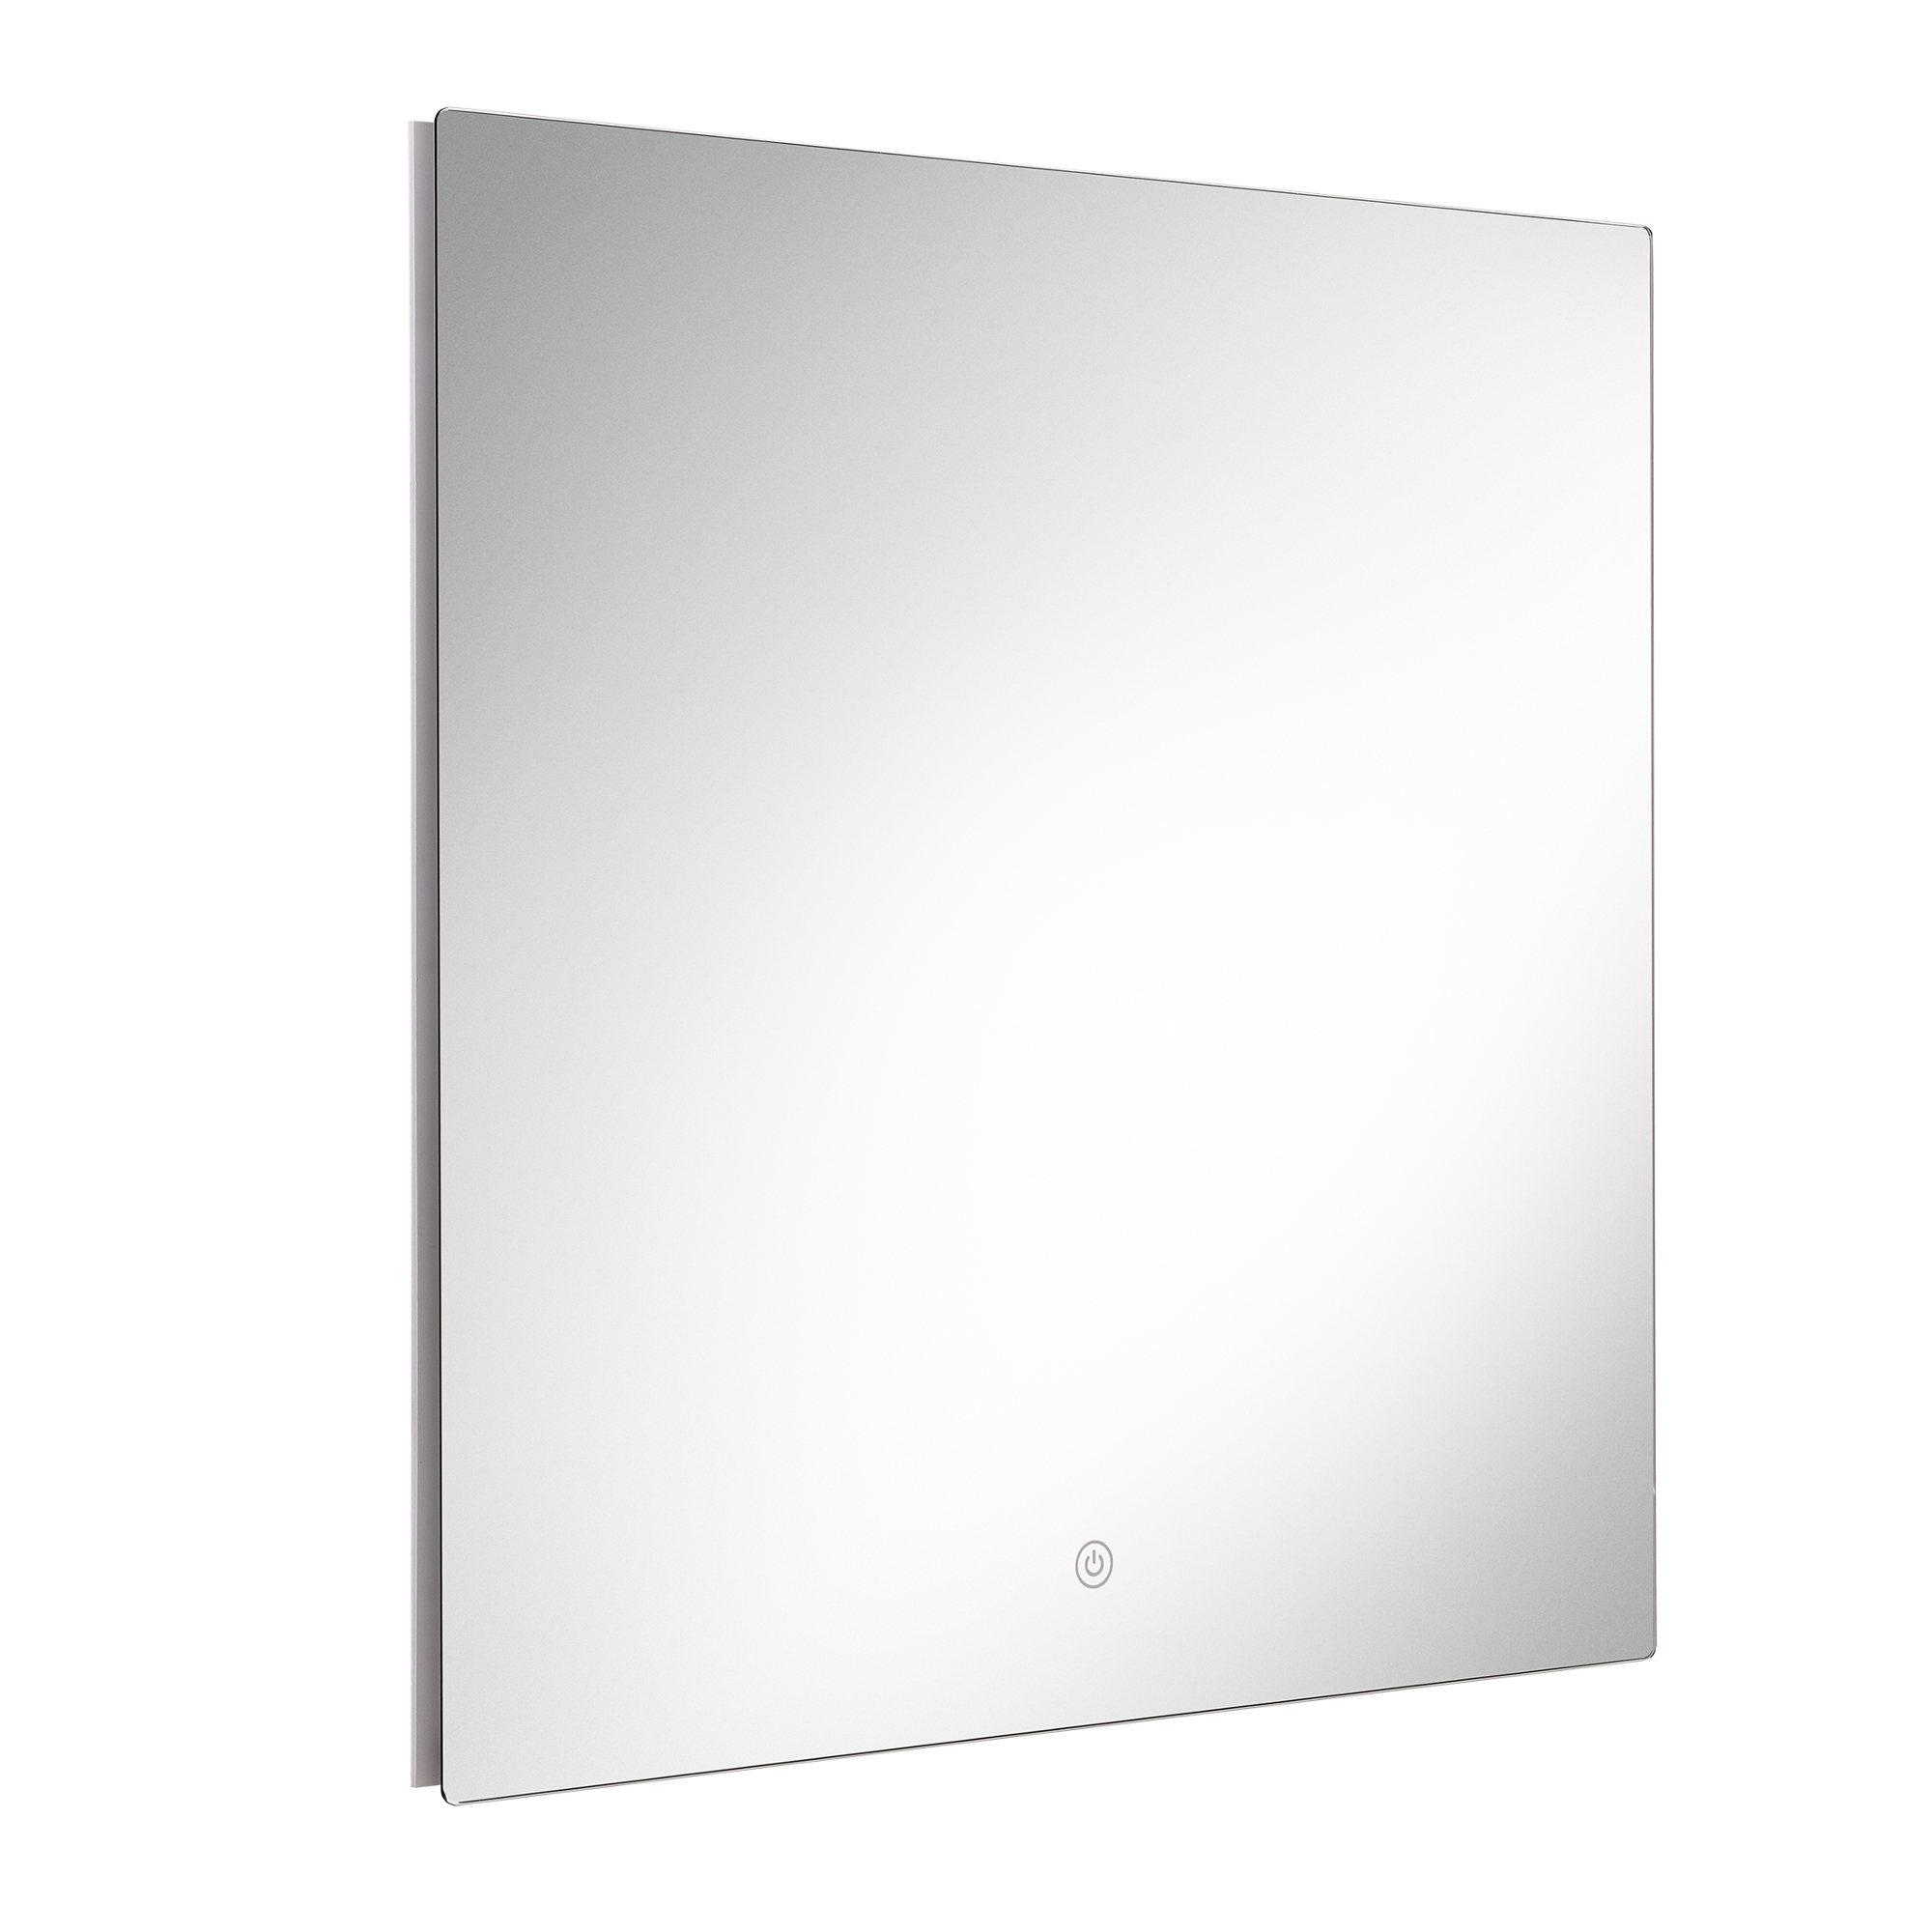 Neuhaus led miroir de la salle bain mural lumi re for Lumiere led miroir